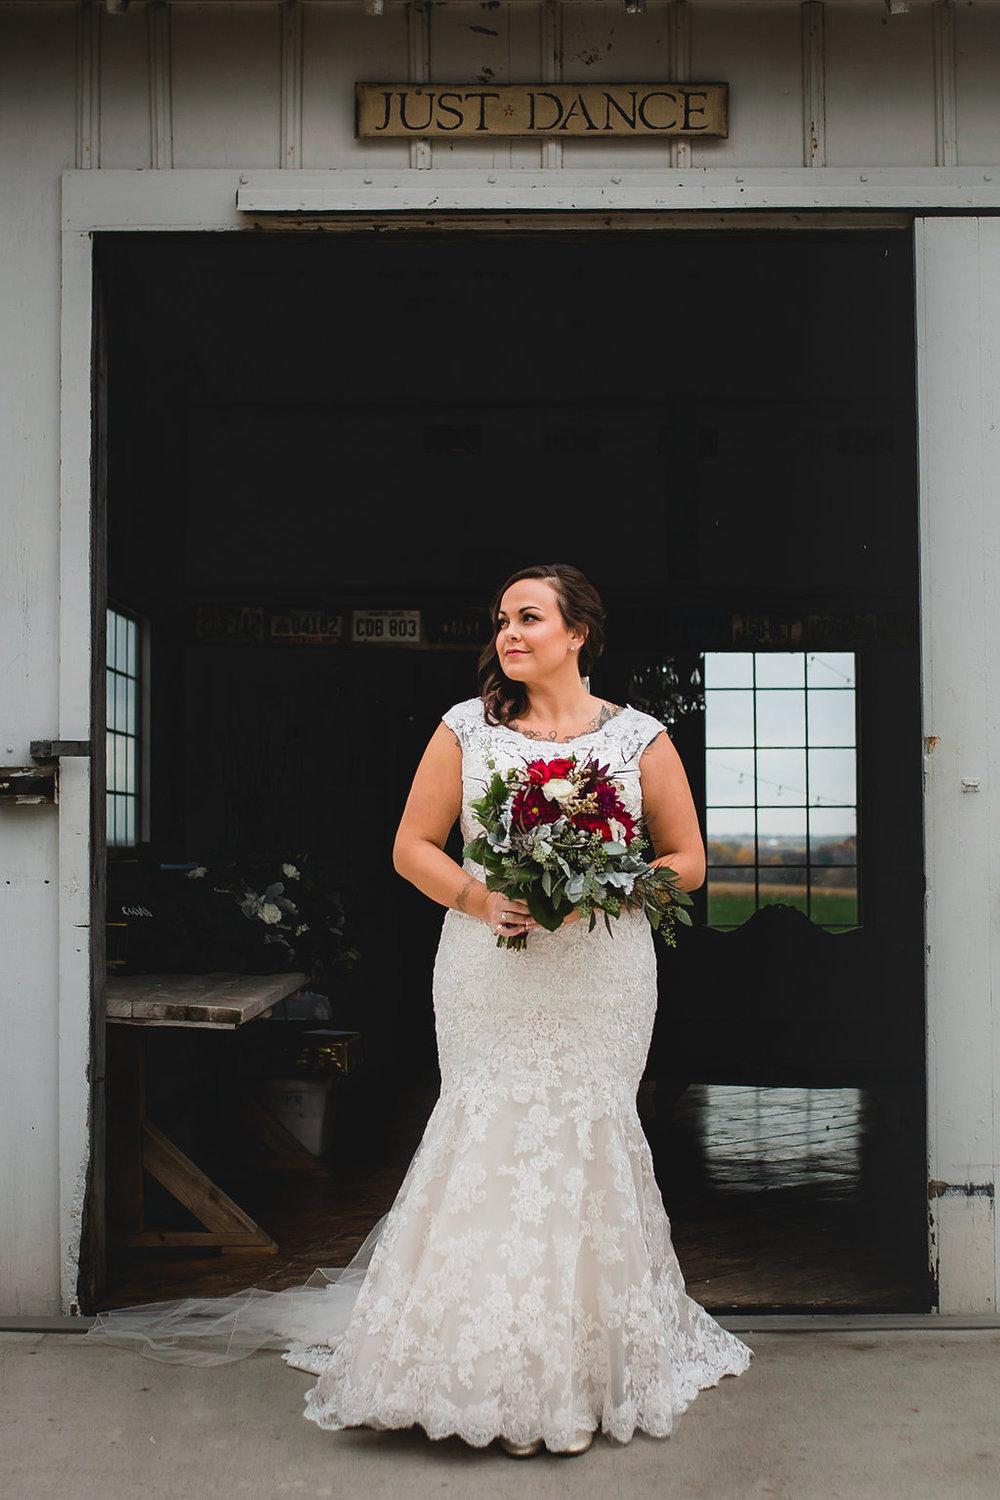 Leslee & Billy | Legacy Hill Farm Wedding | Aqua Fox Photography | A Vintage Touch Wedding Planning | Sixpence Events & Planning day of coordinating | bridal portraits | bride with curves